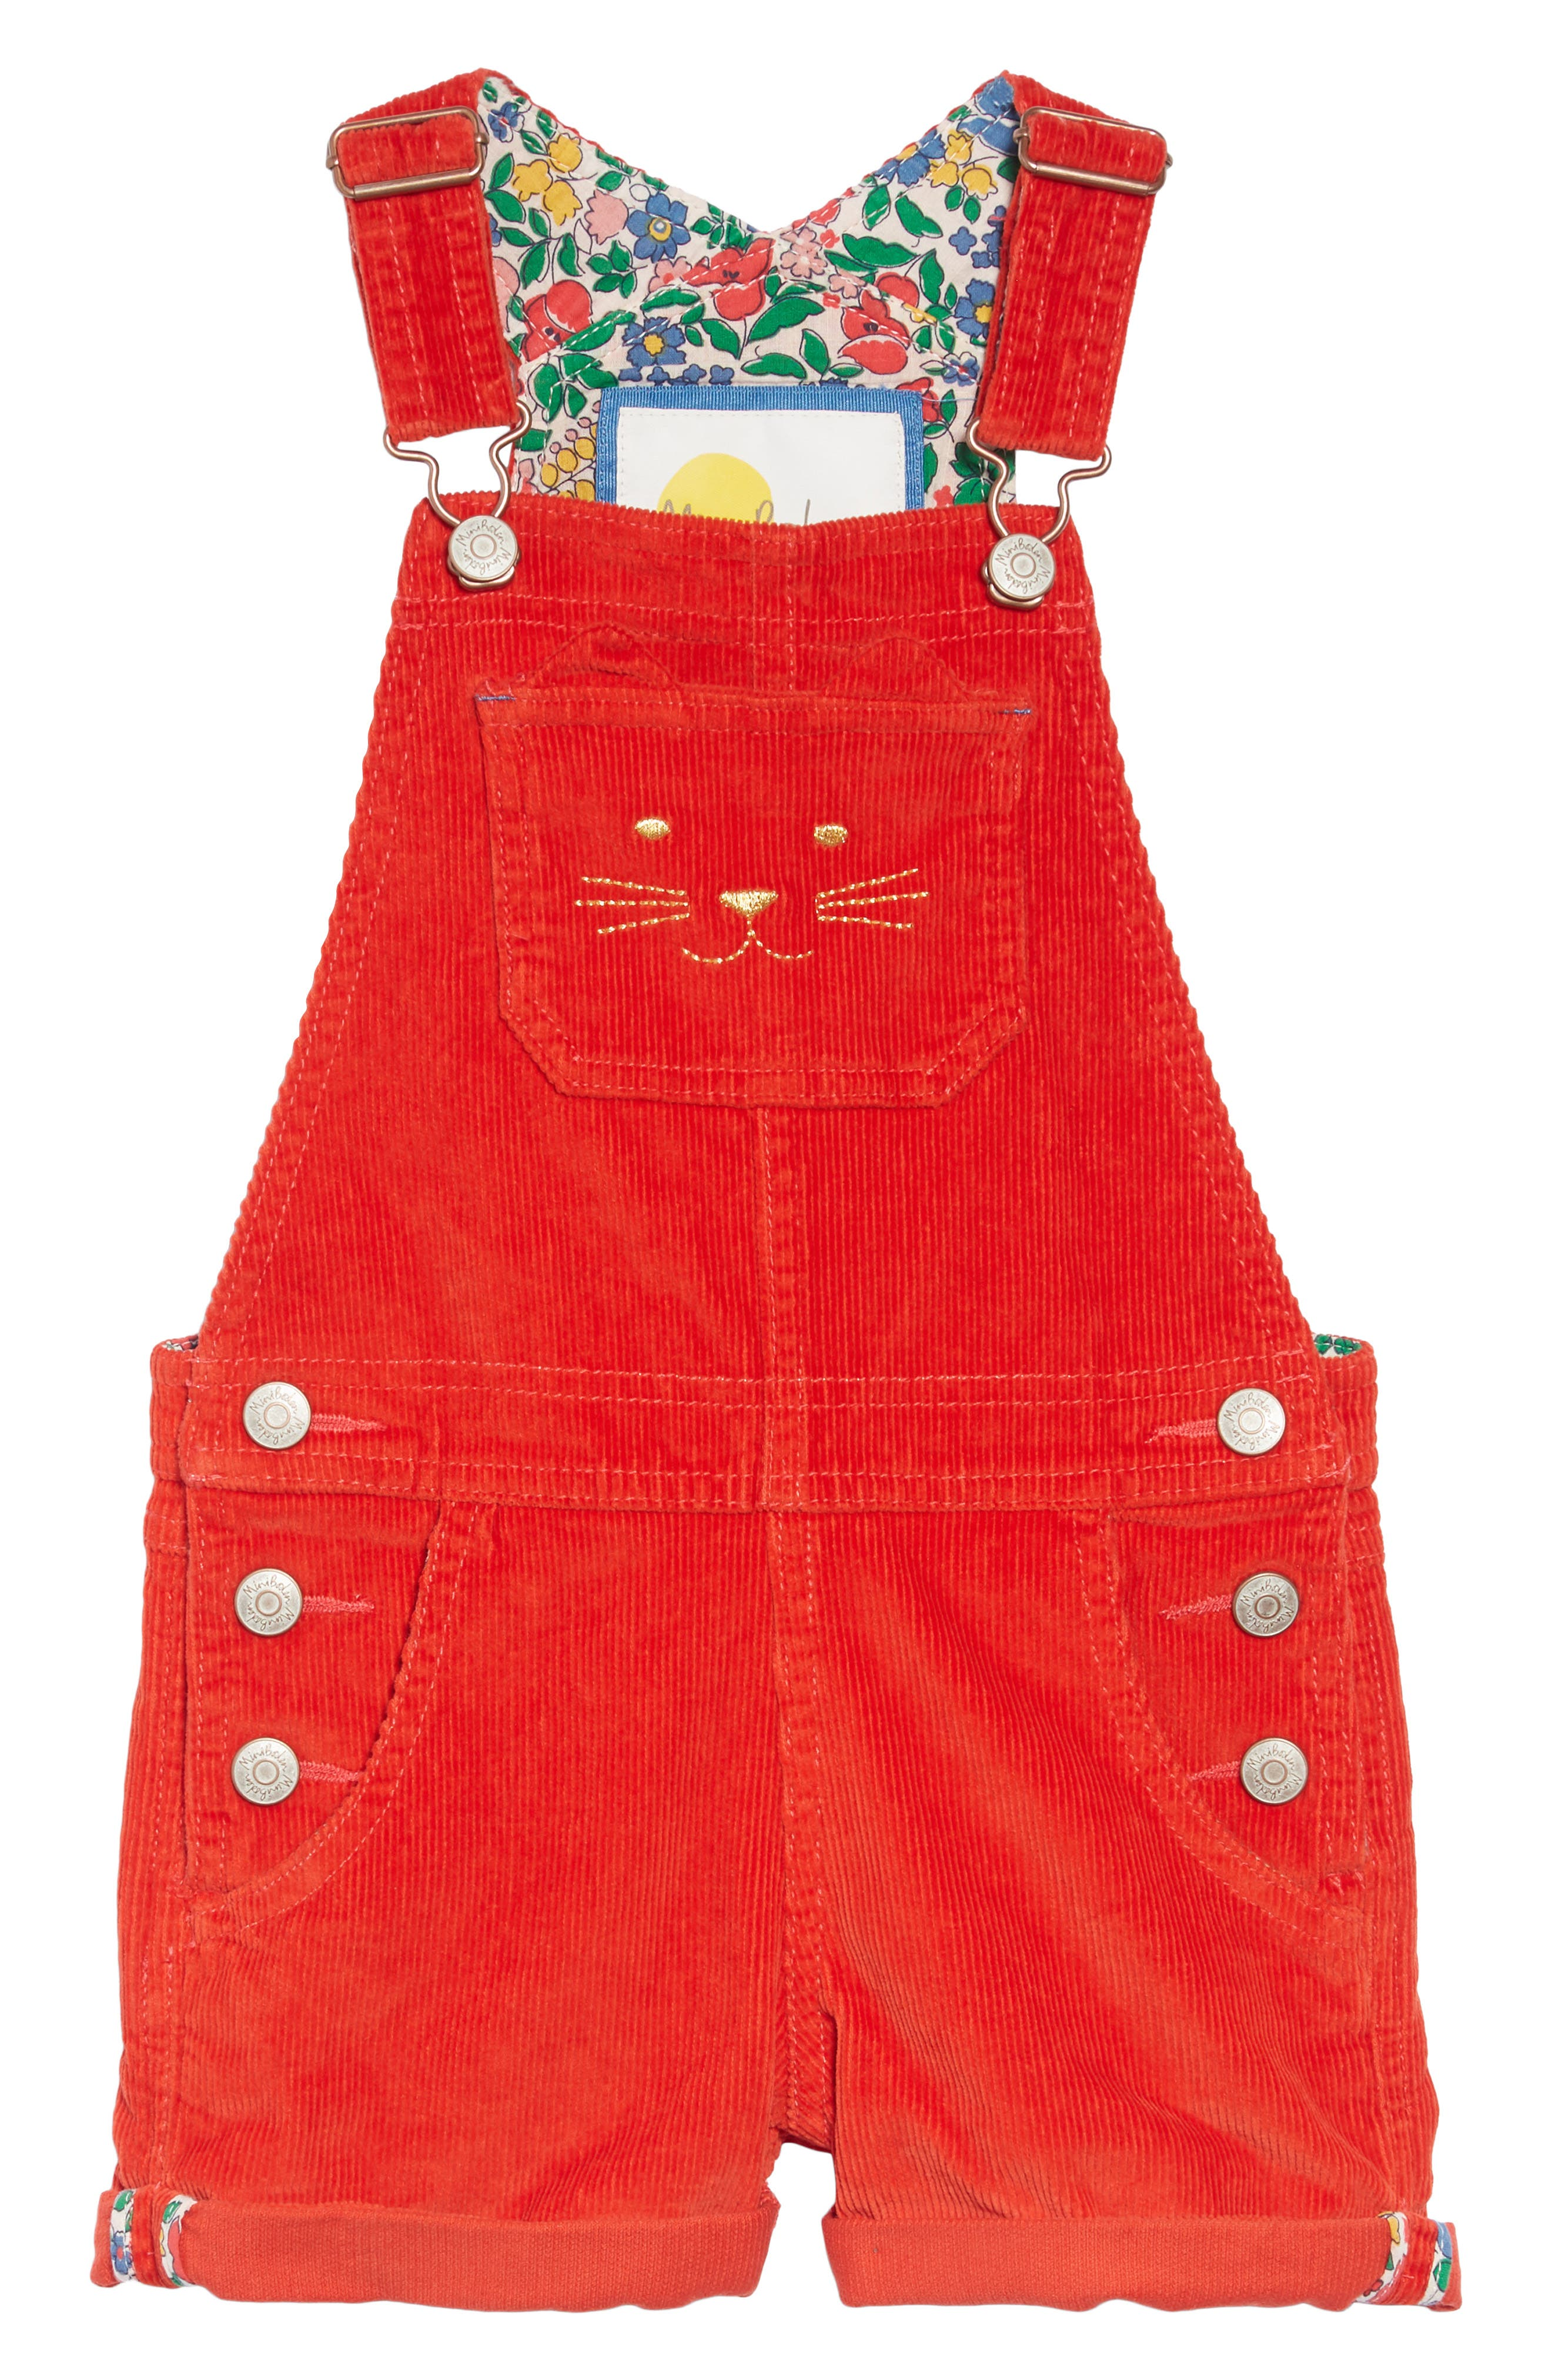 Dungarees Short Overalls,                         Main,                         color, RED POPPY RED